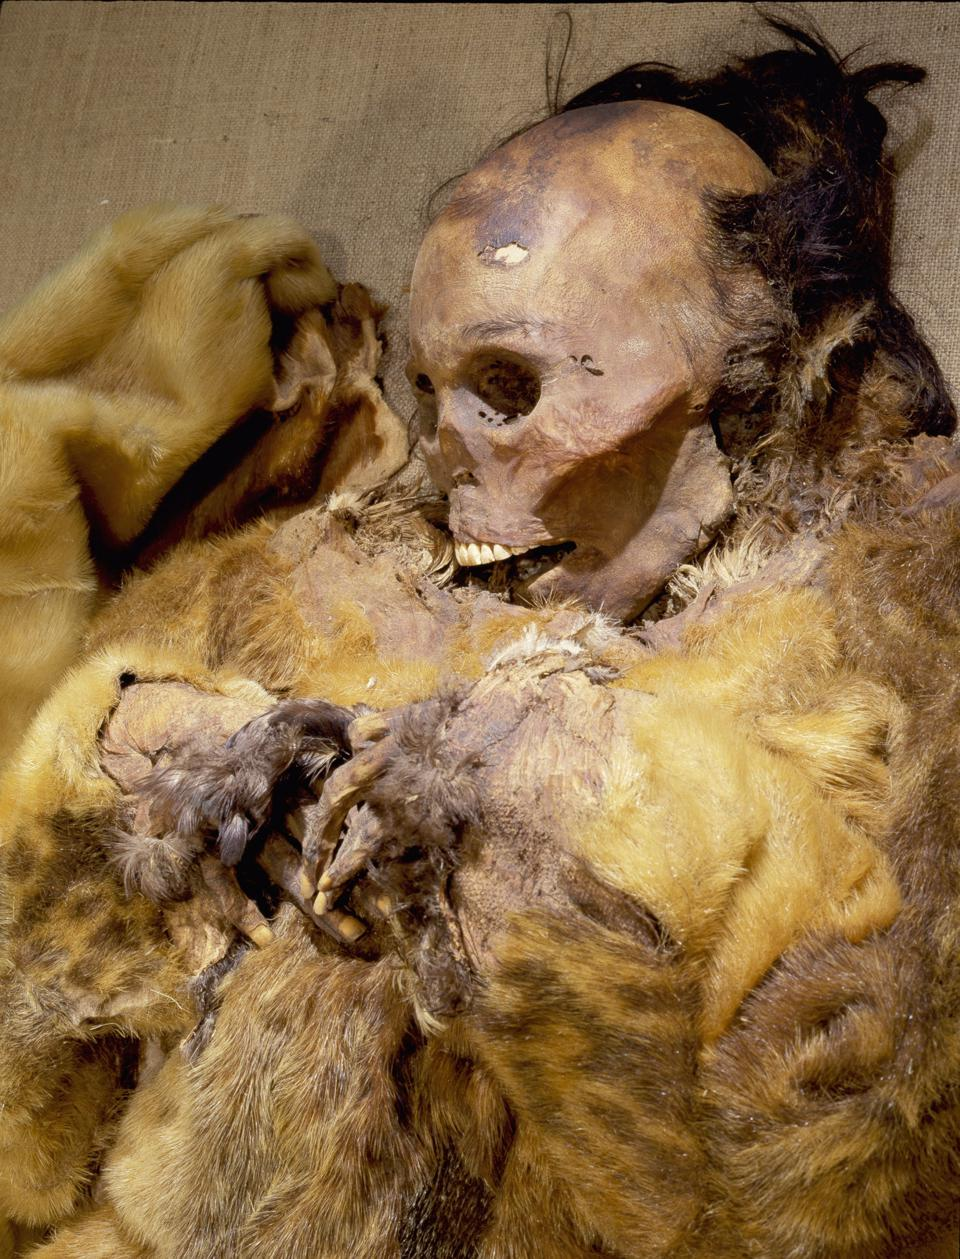 Archaeology Greenlandic woman, preserved through natural mummification